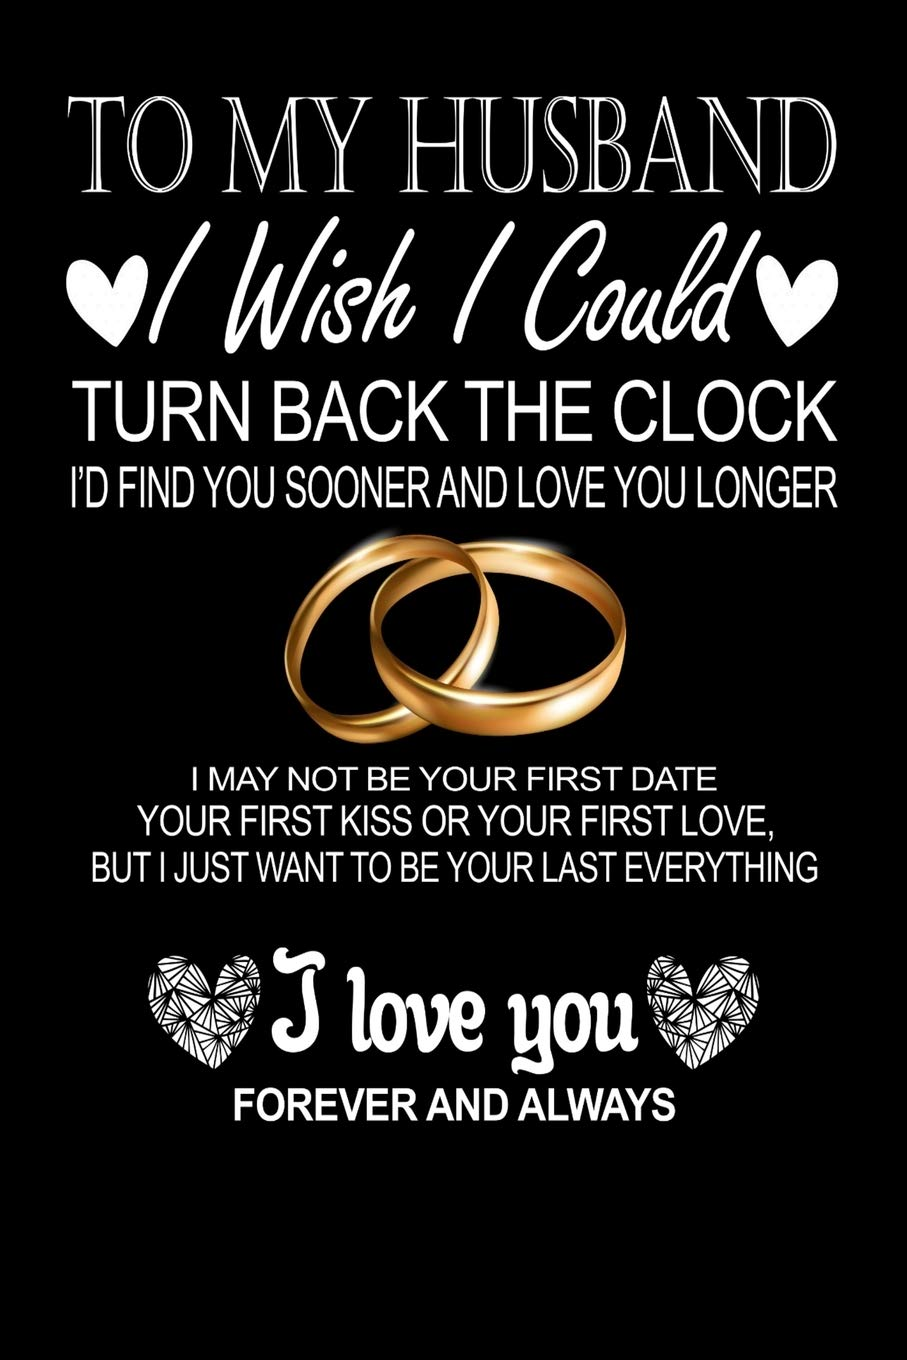 To My Husband I Wish I Could Turn Back The Clock Valentines Day Gifts For Husband From Wife Journal Christmas Presents Gifts For Him Birthday Gifts Gift For Husband Romantic